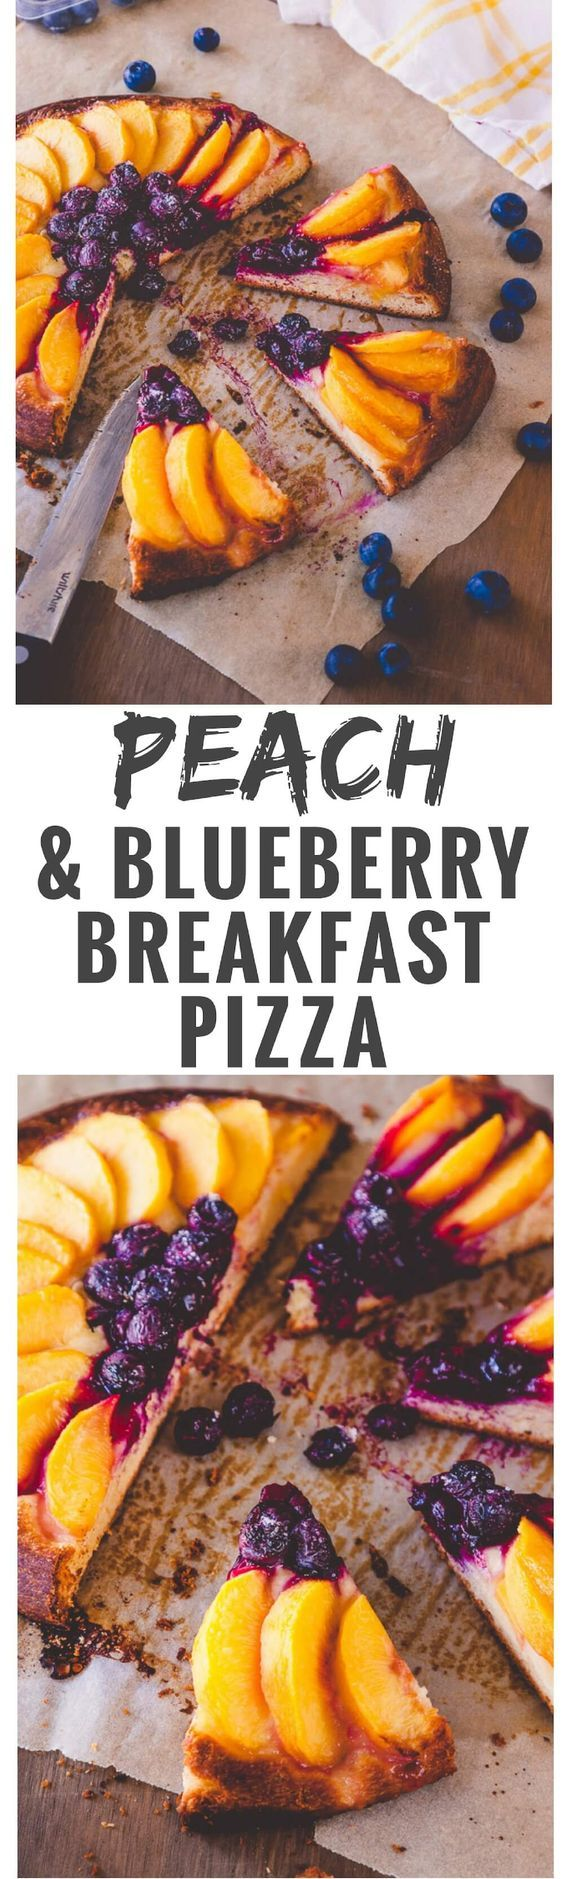 Looking for a decadent weekend breakfast treat? Then this peach and blueberry breakfast pizza recipe might just fit the bill.